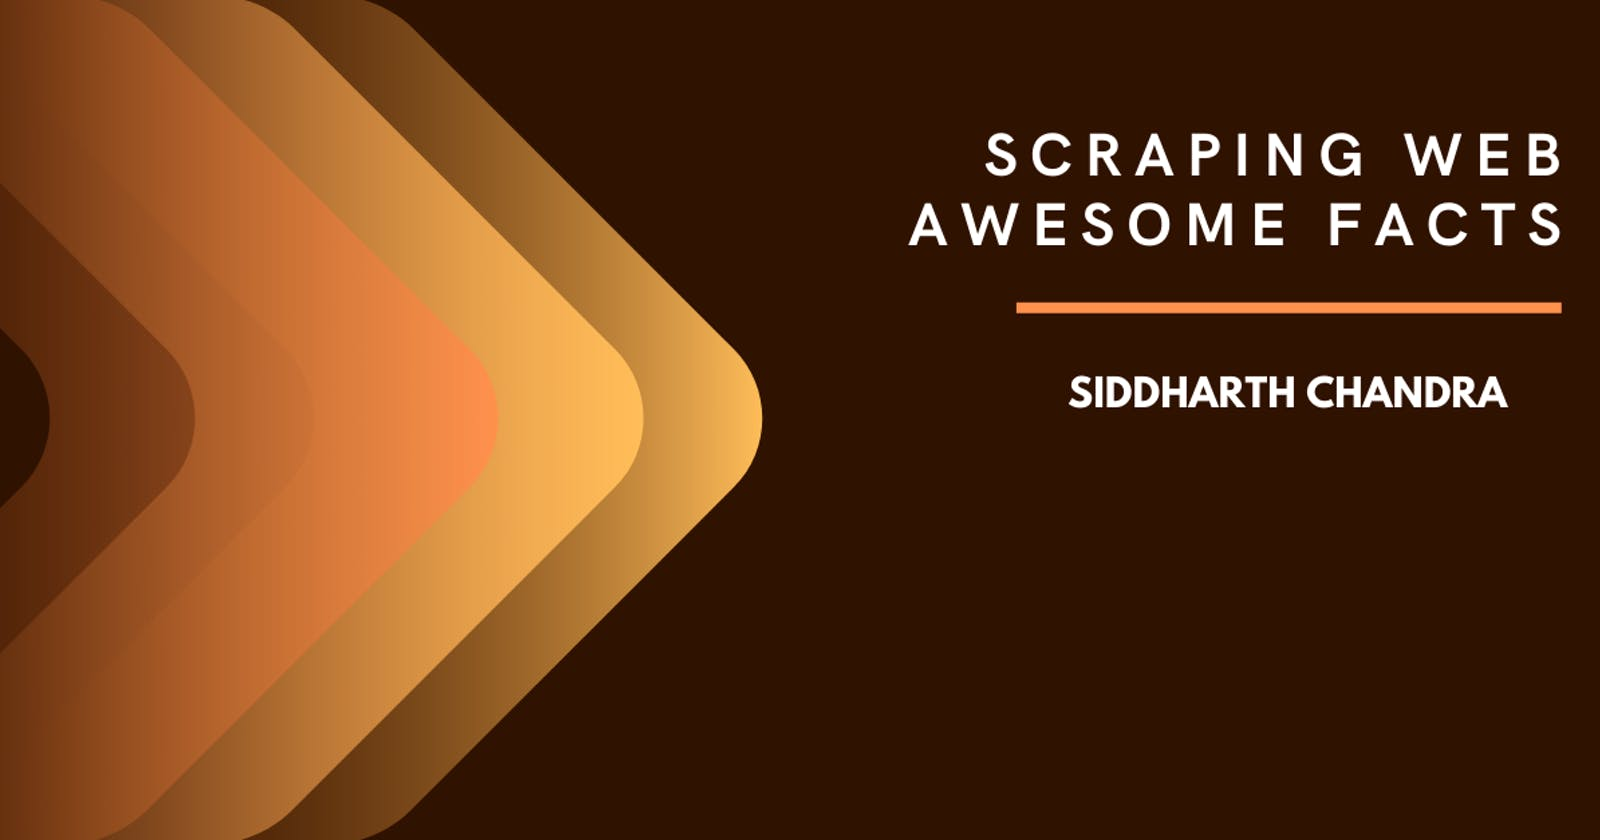 Scraping Web - Awesome Facts